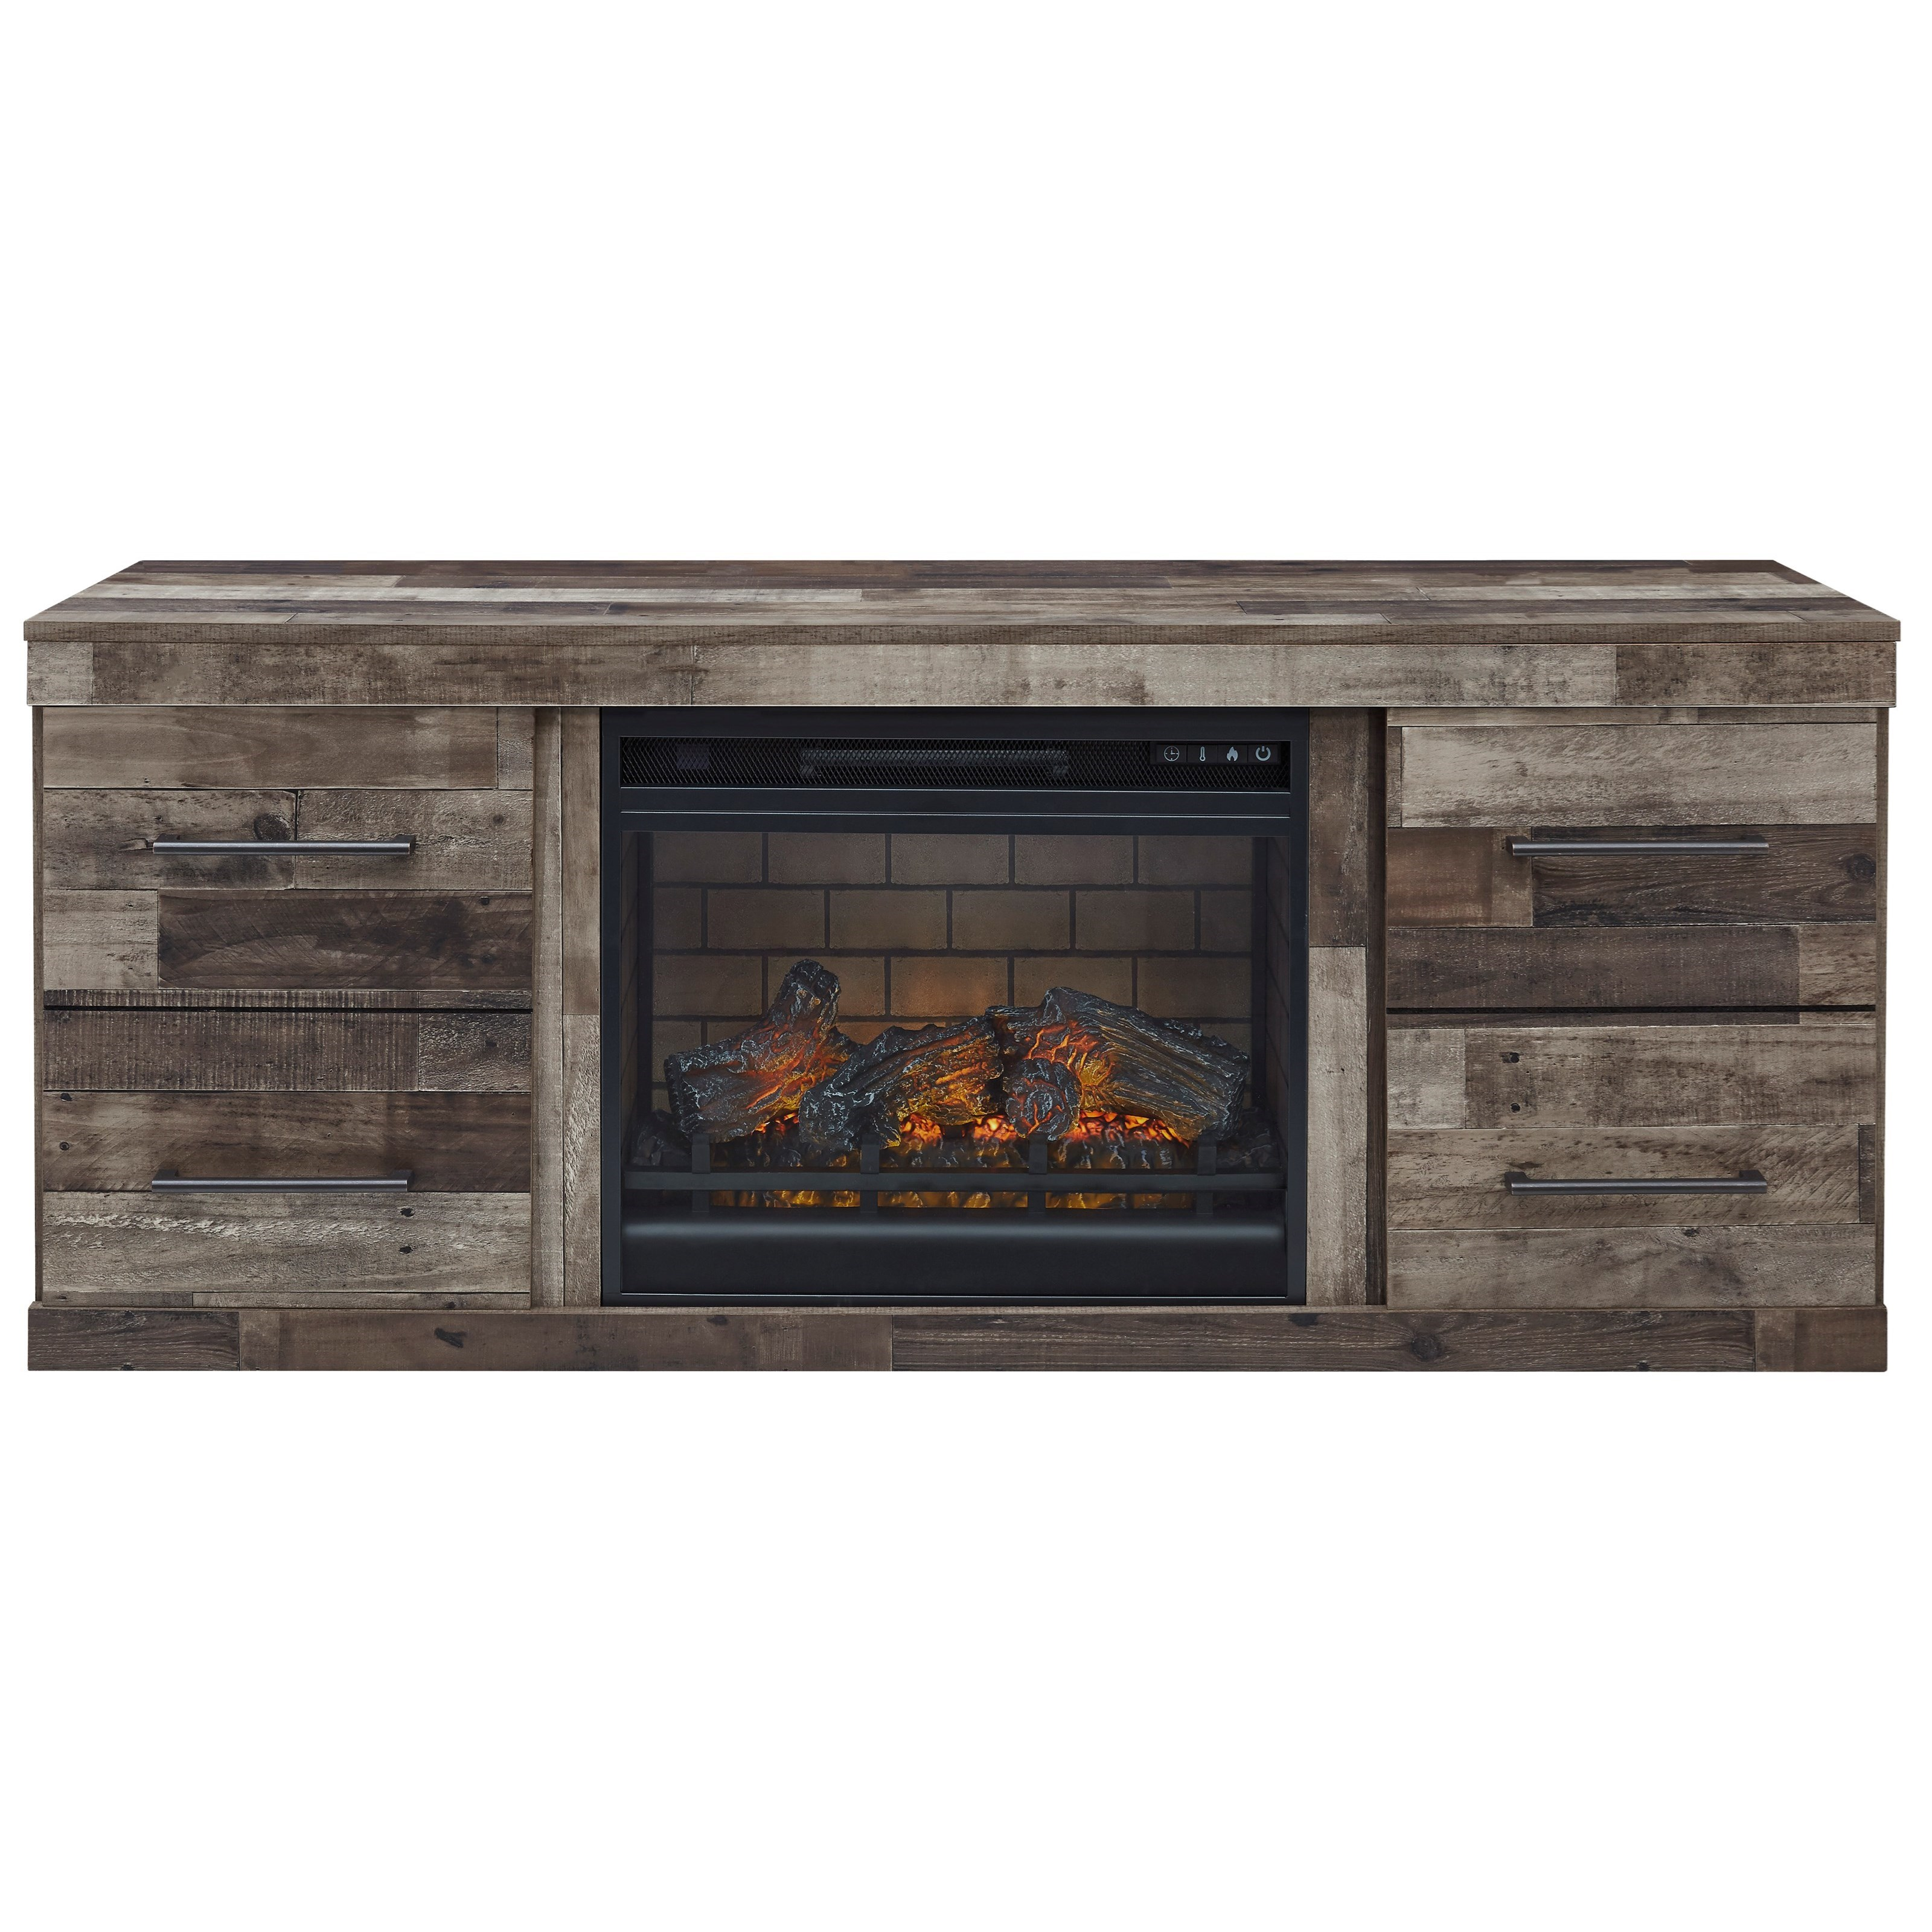 Derekson Fireplace Console by Signature Design by Ashley at Northeast Factory Direct